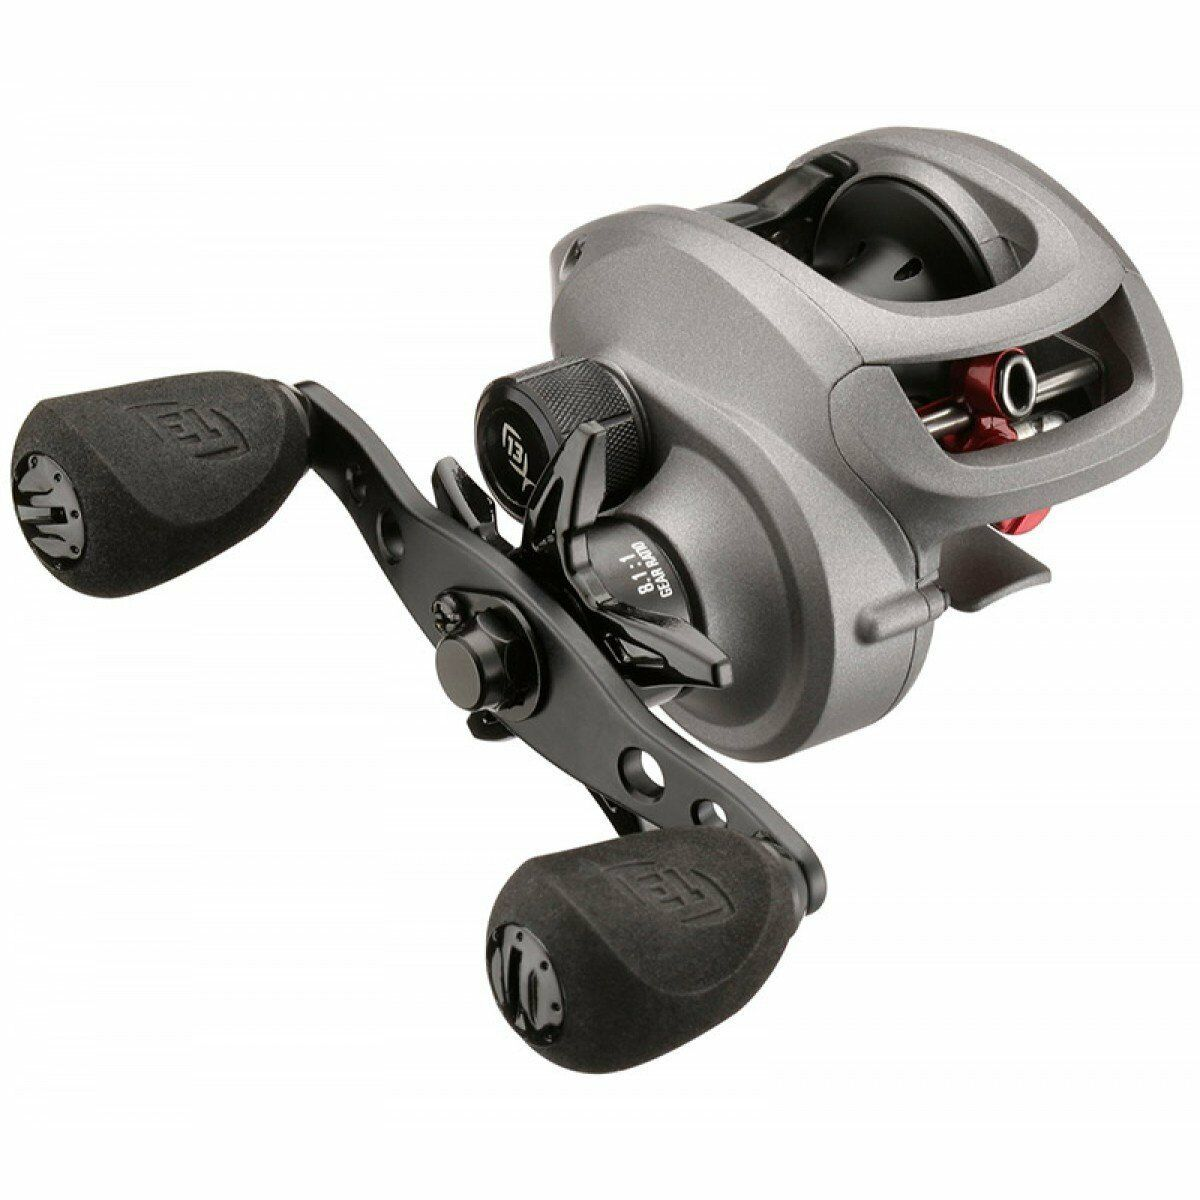 13 Fishing One3 Inception 6.6 1 Right Hand Reel